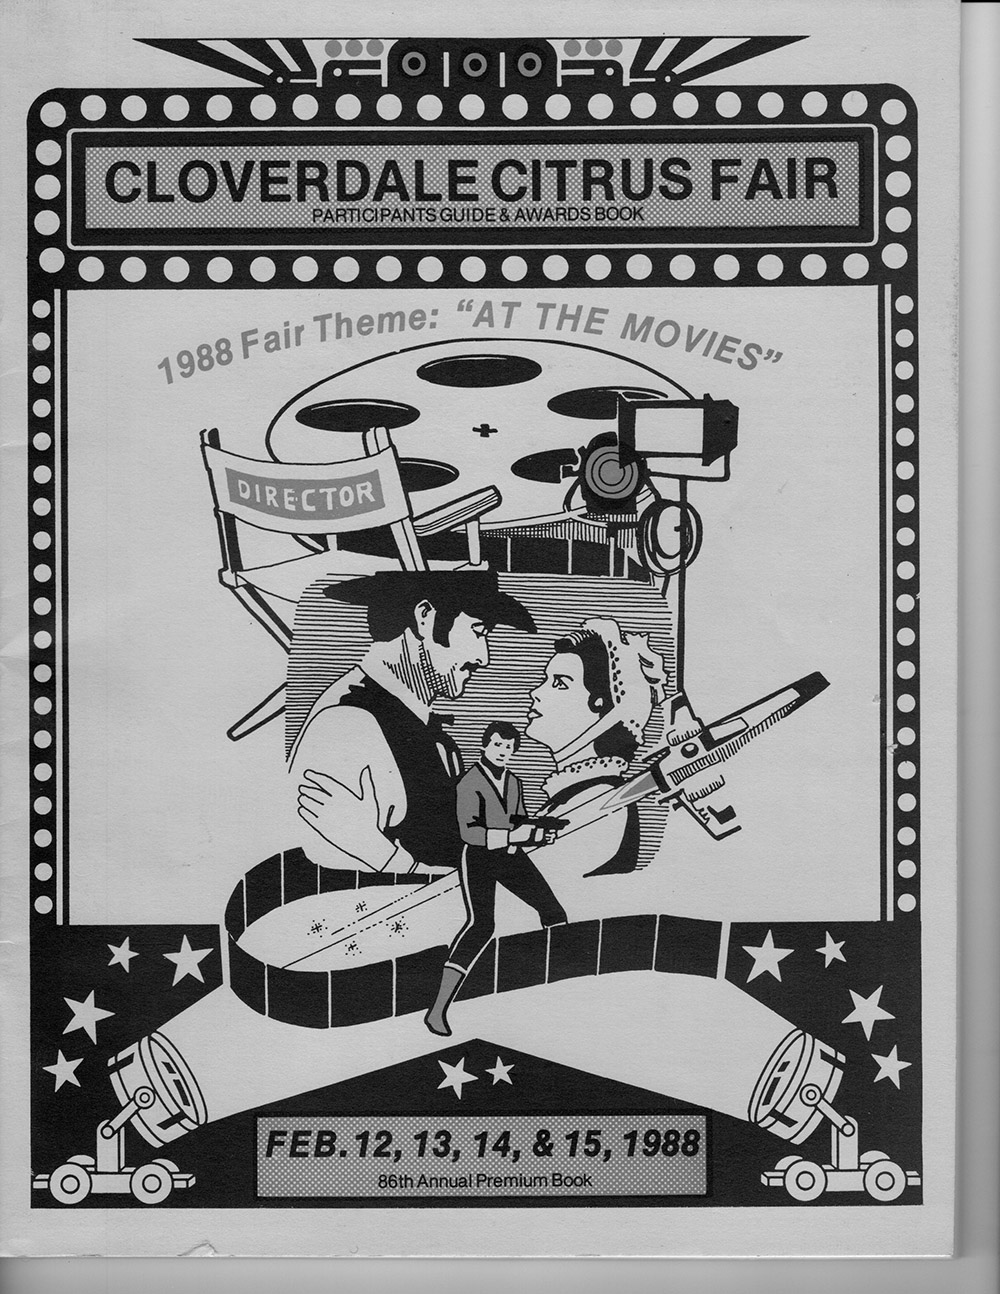 Cloverdale Citrus Fair 1988